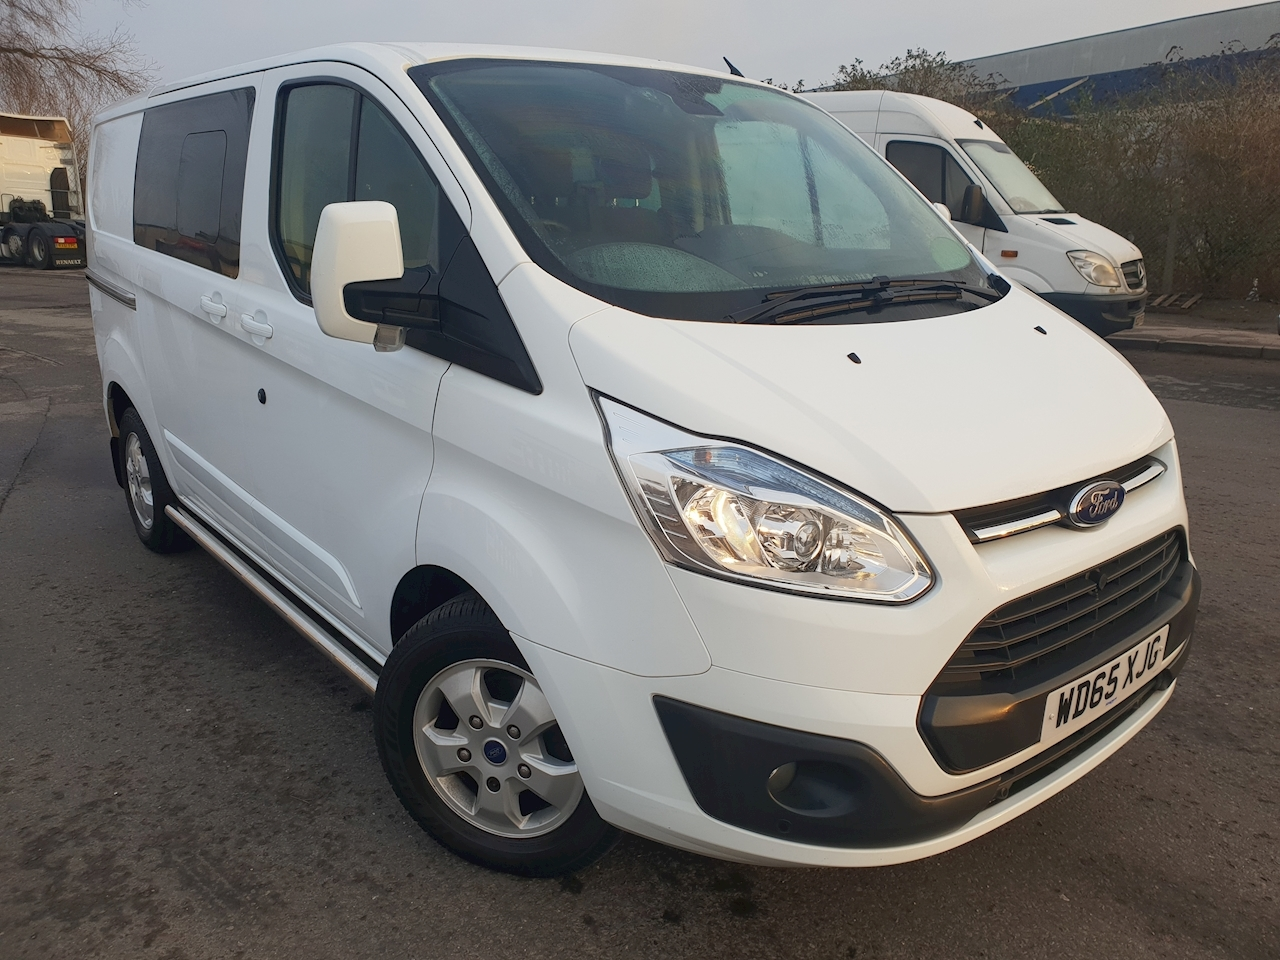 Ford Transit Custom 290 L1 2.2 TDCi 125ps Low Roof Double Cab Limited Crew Van DIESEL FWD